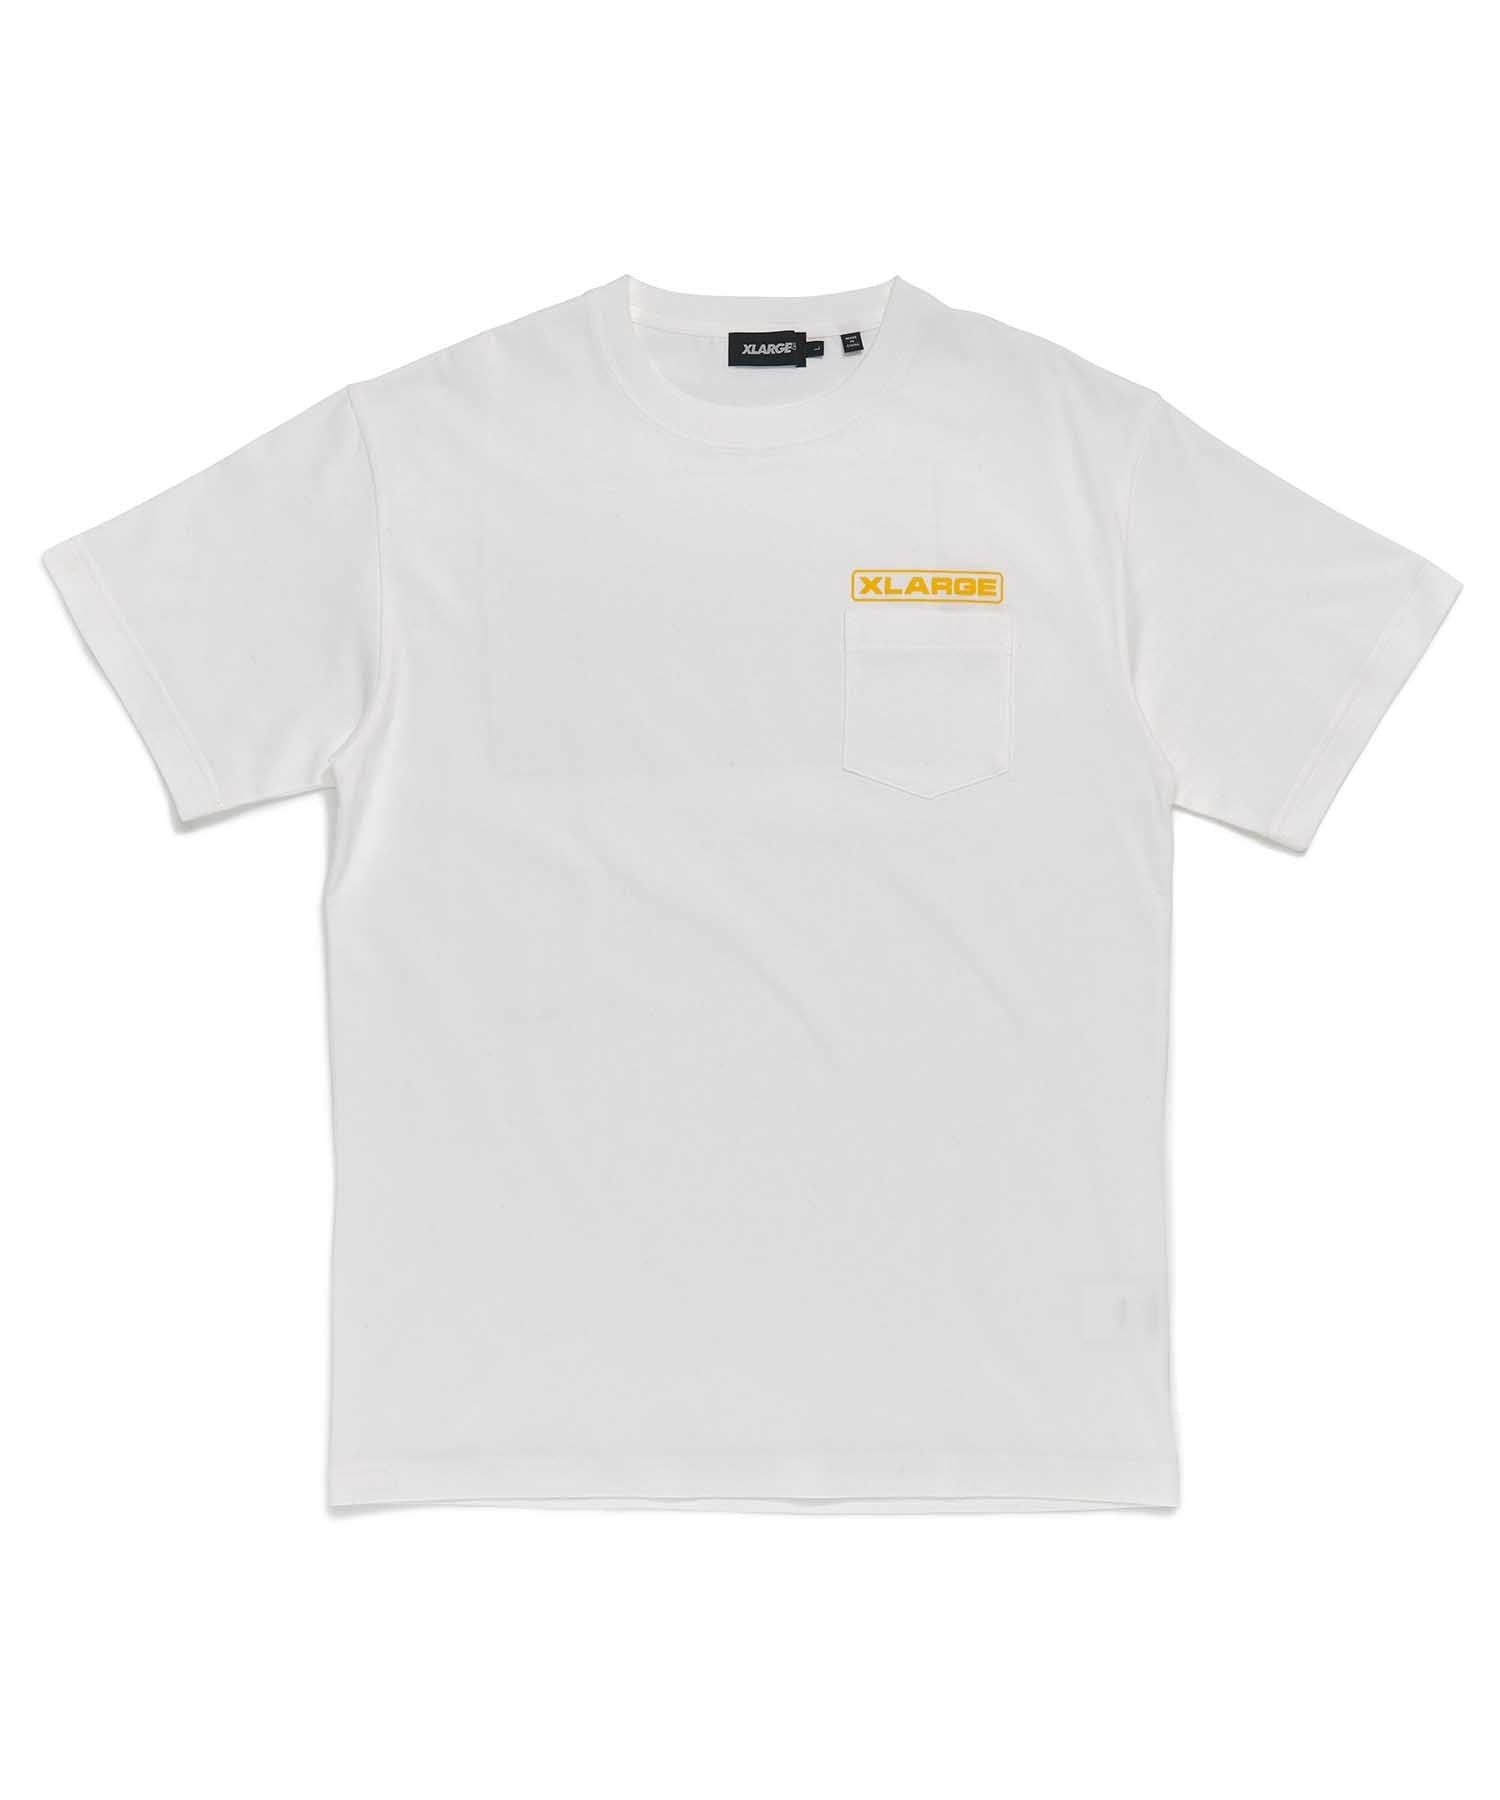 S/S ROUNDED LOGO POCKET TEE - WHITE